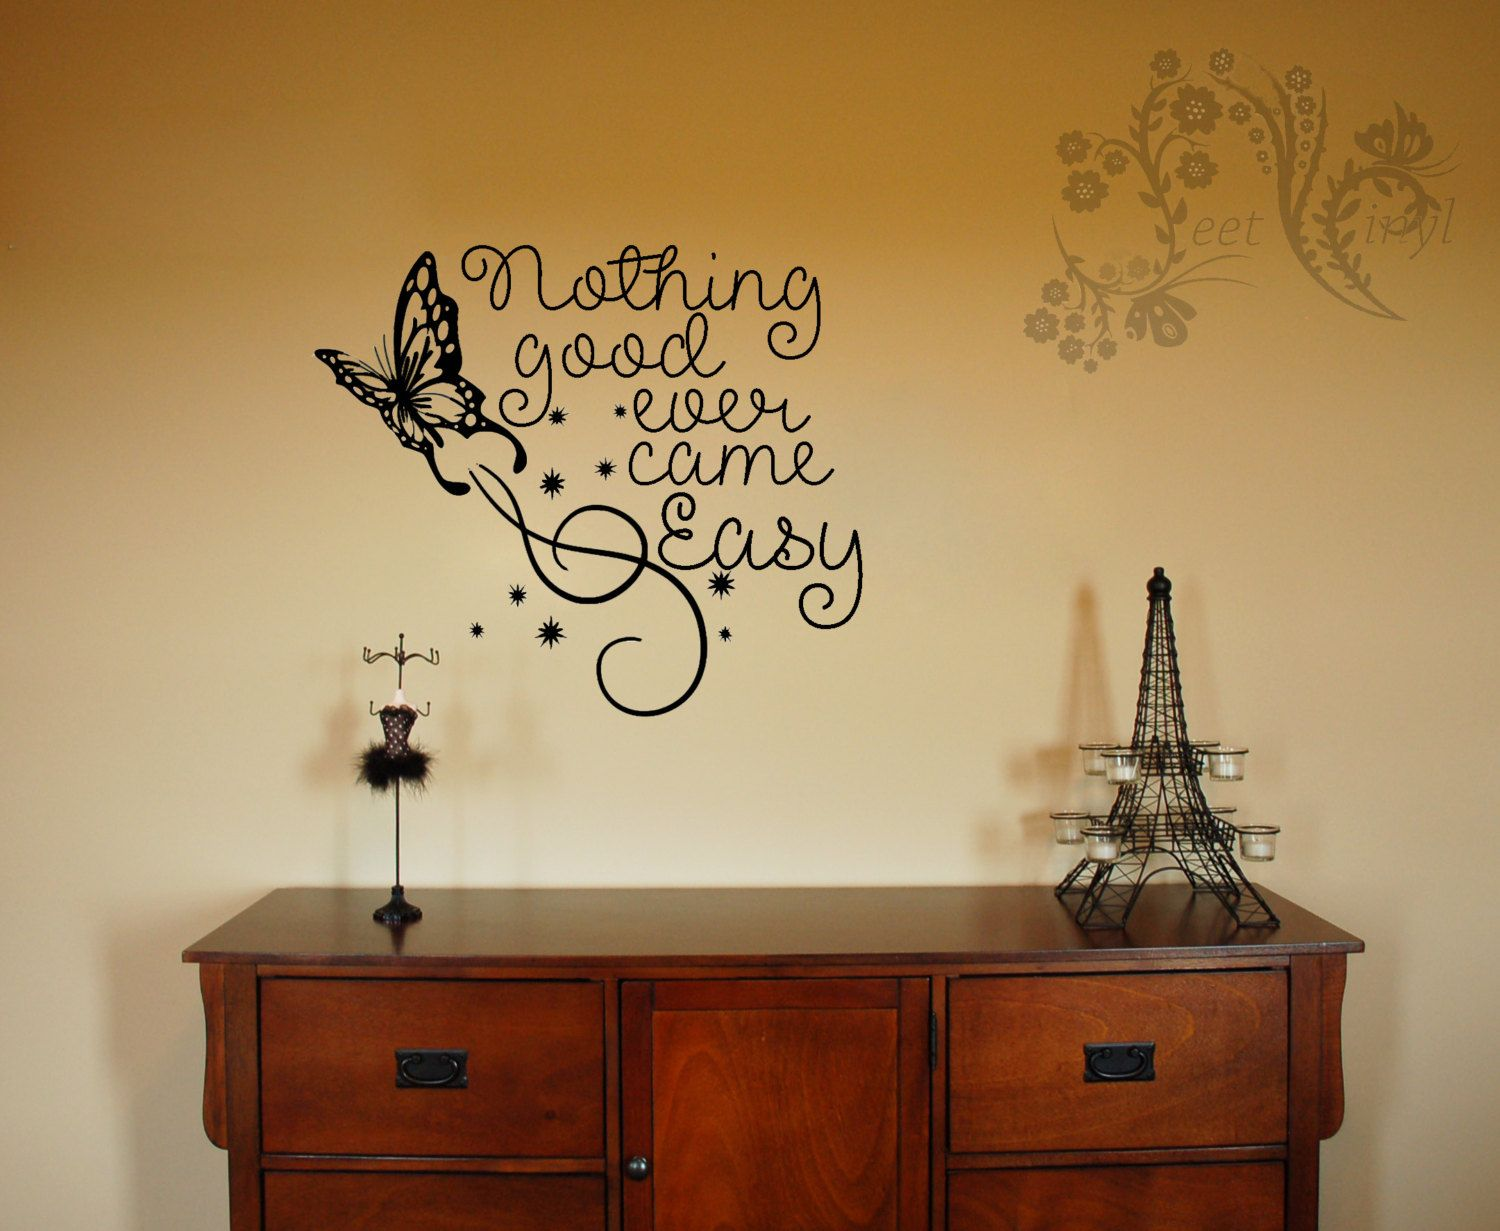 Nothing good ever came easy - Vinyl Decal - Wall Vinyl - Wall Décor ...